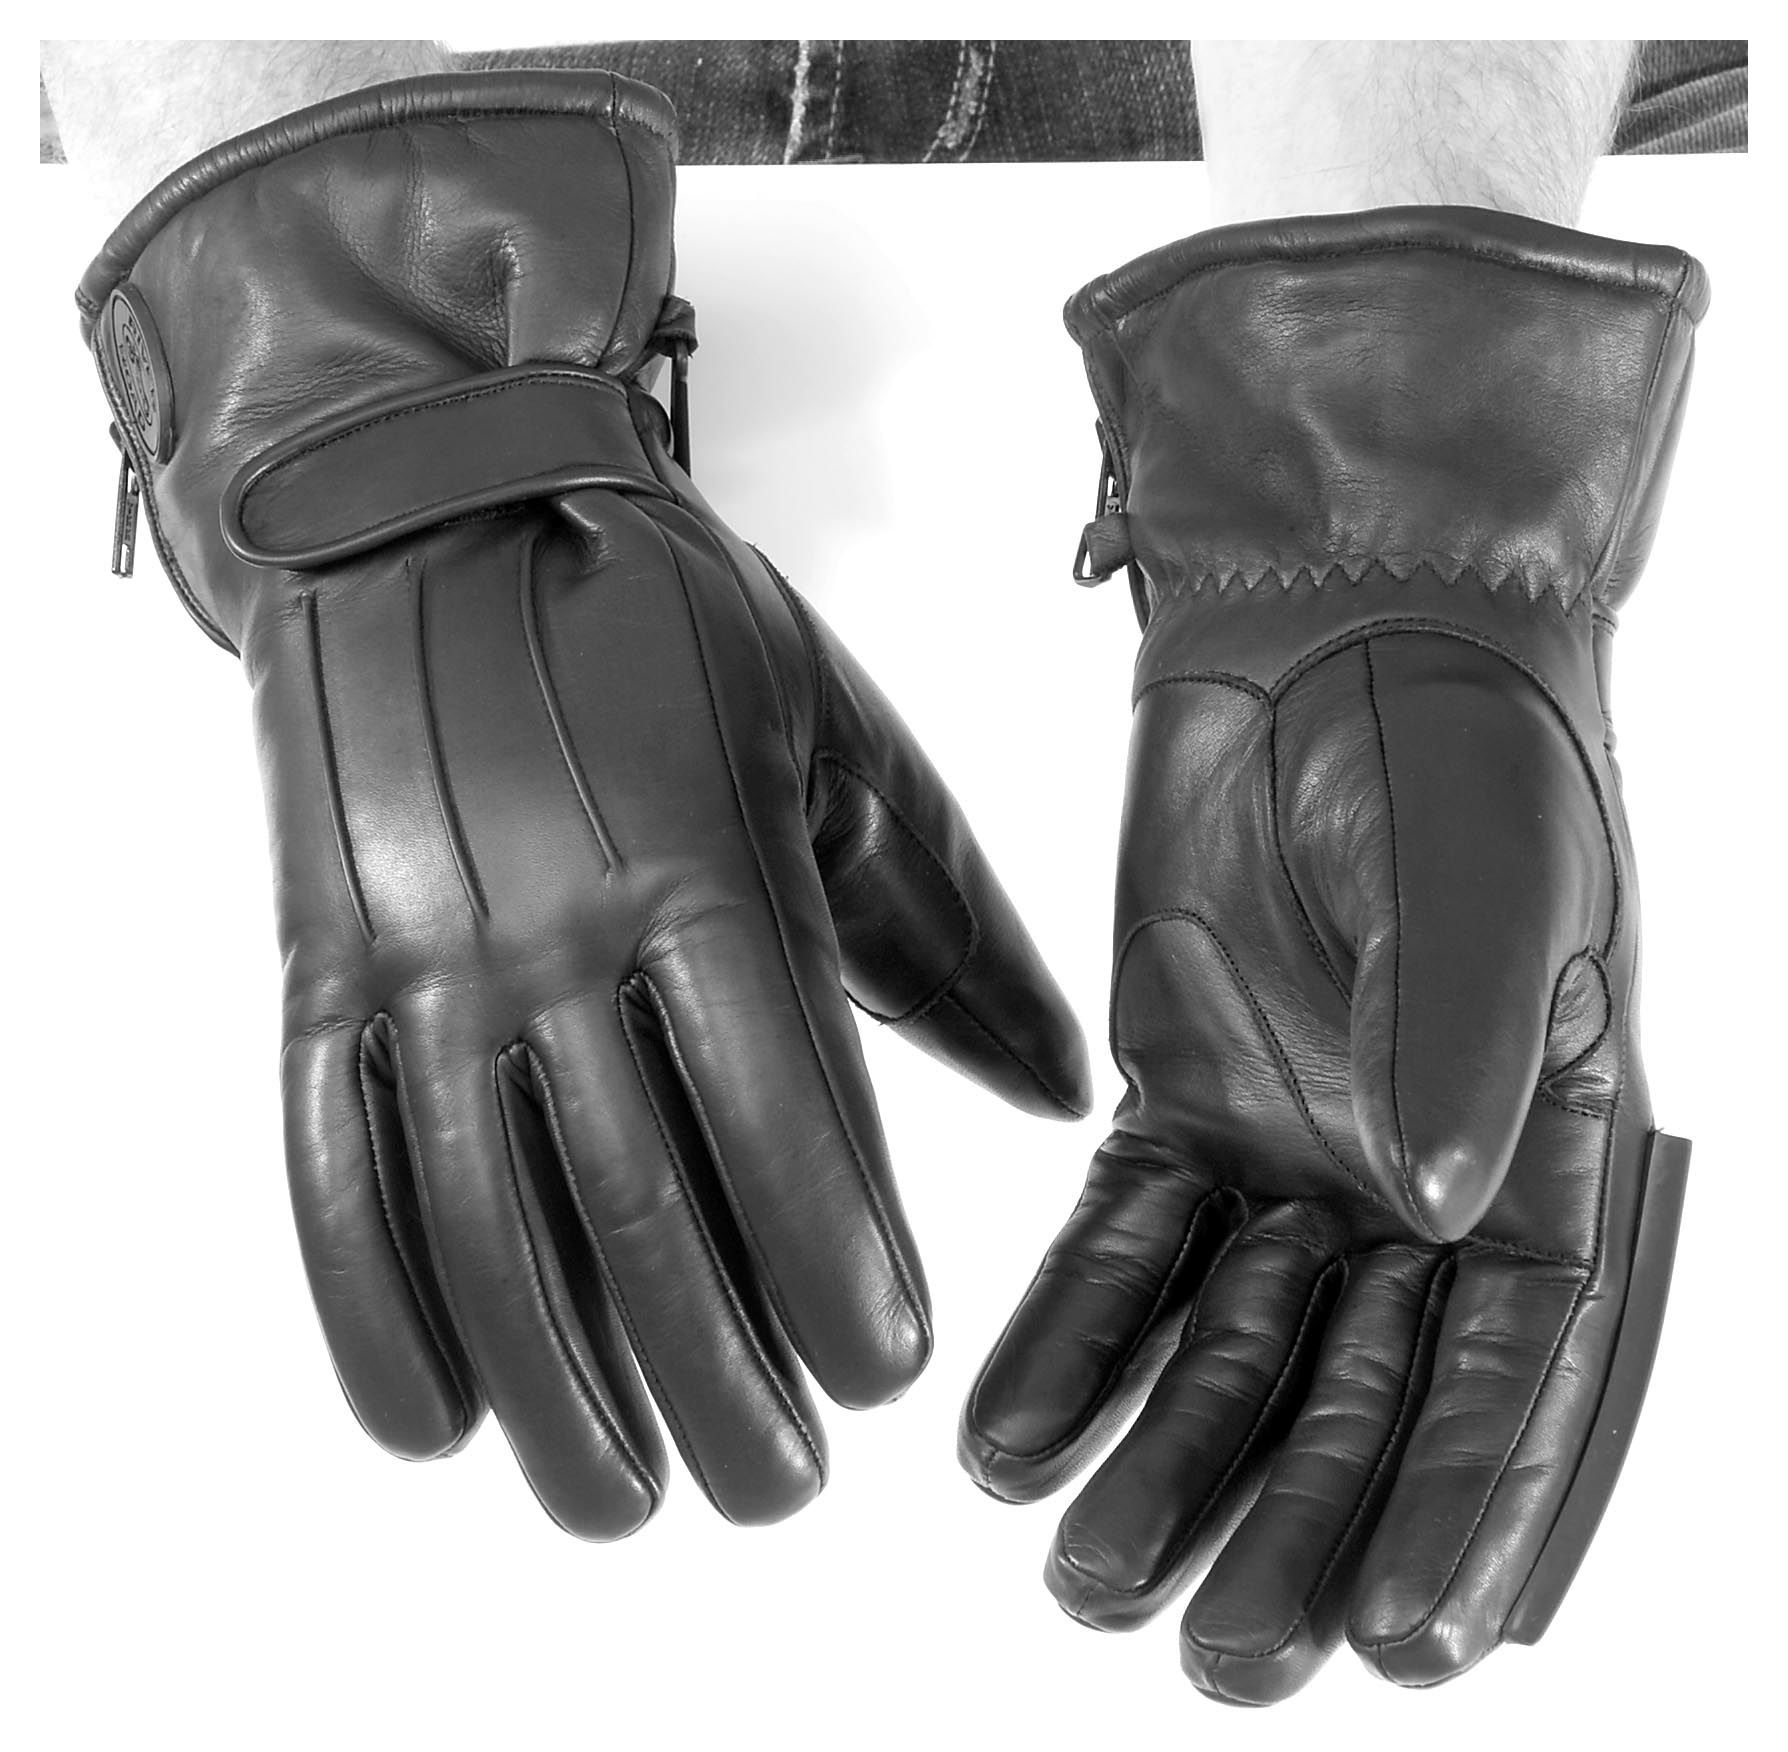 Triumph motorcycle leather gloves - Triumph Motorcycle Leather Gloves 41